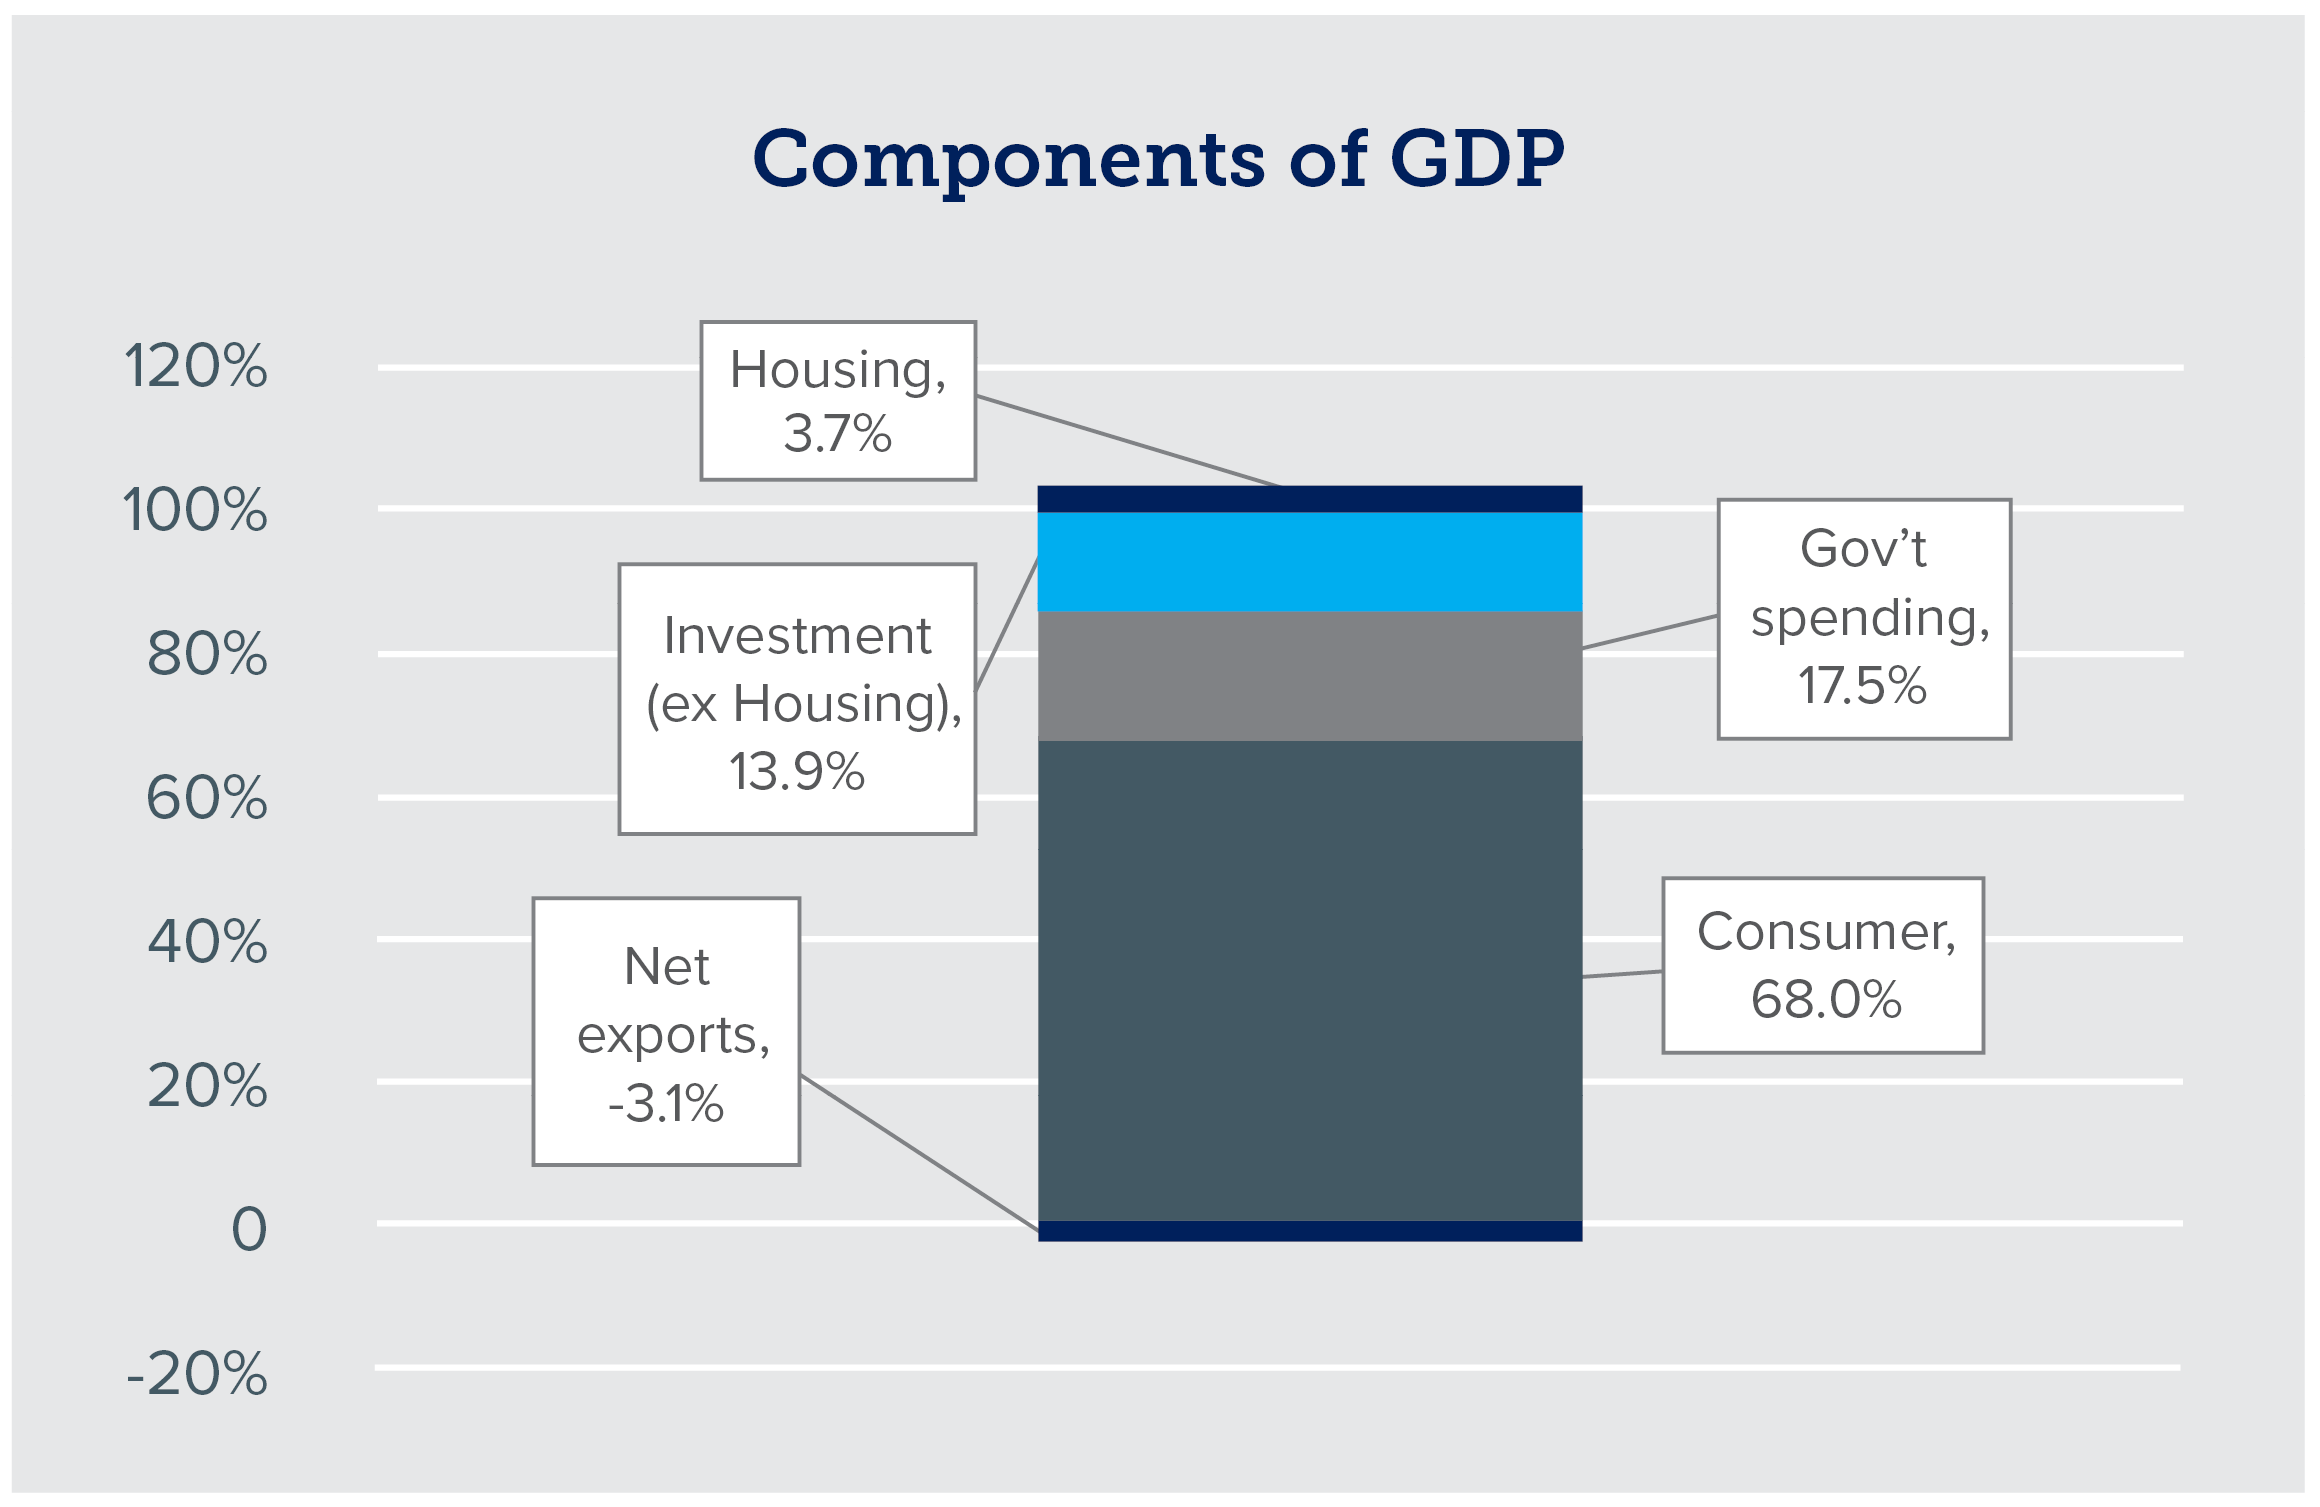 Bar graph of components of GDP